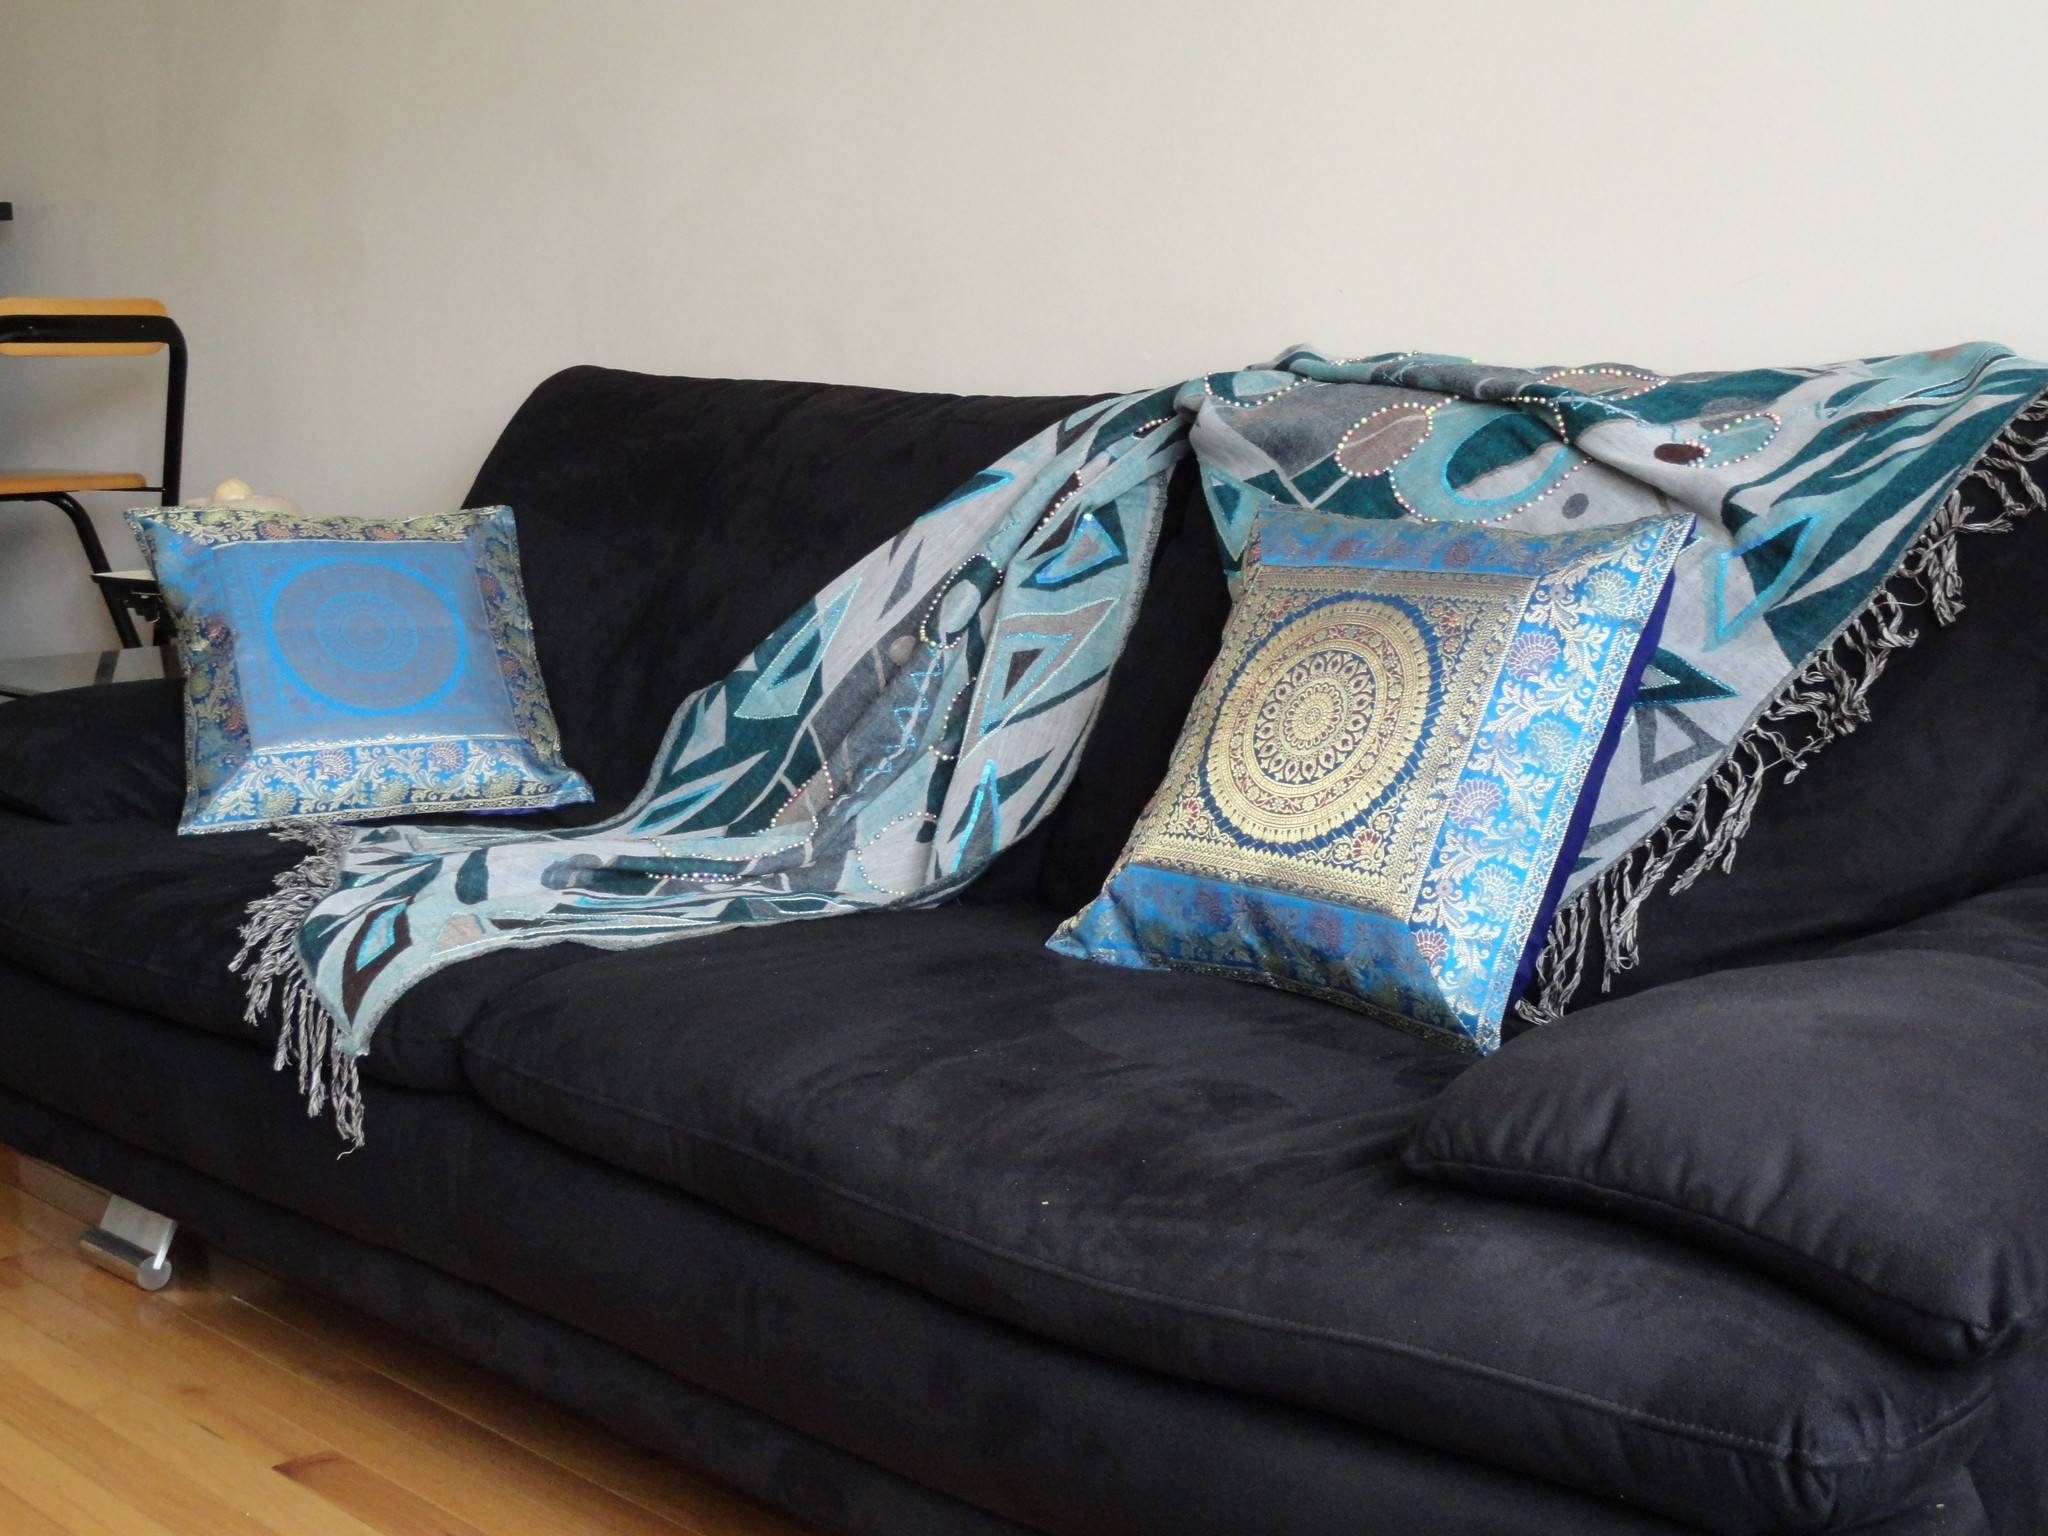 Indian Sofa Covers 74 With Indian Sofa Covers | Jinanhongyu within Turquoise Sofa Covers (Image 15 of 30)